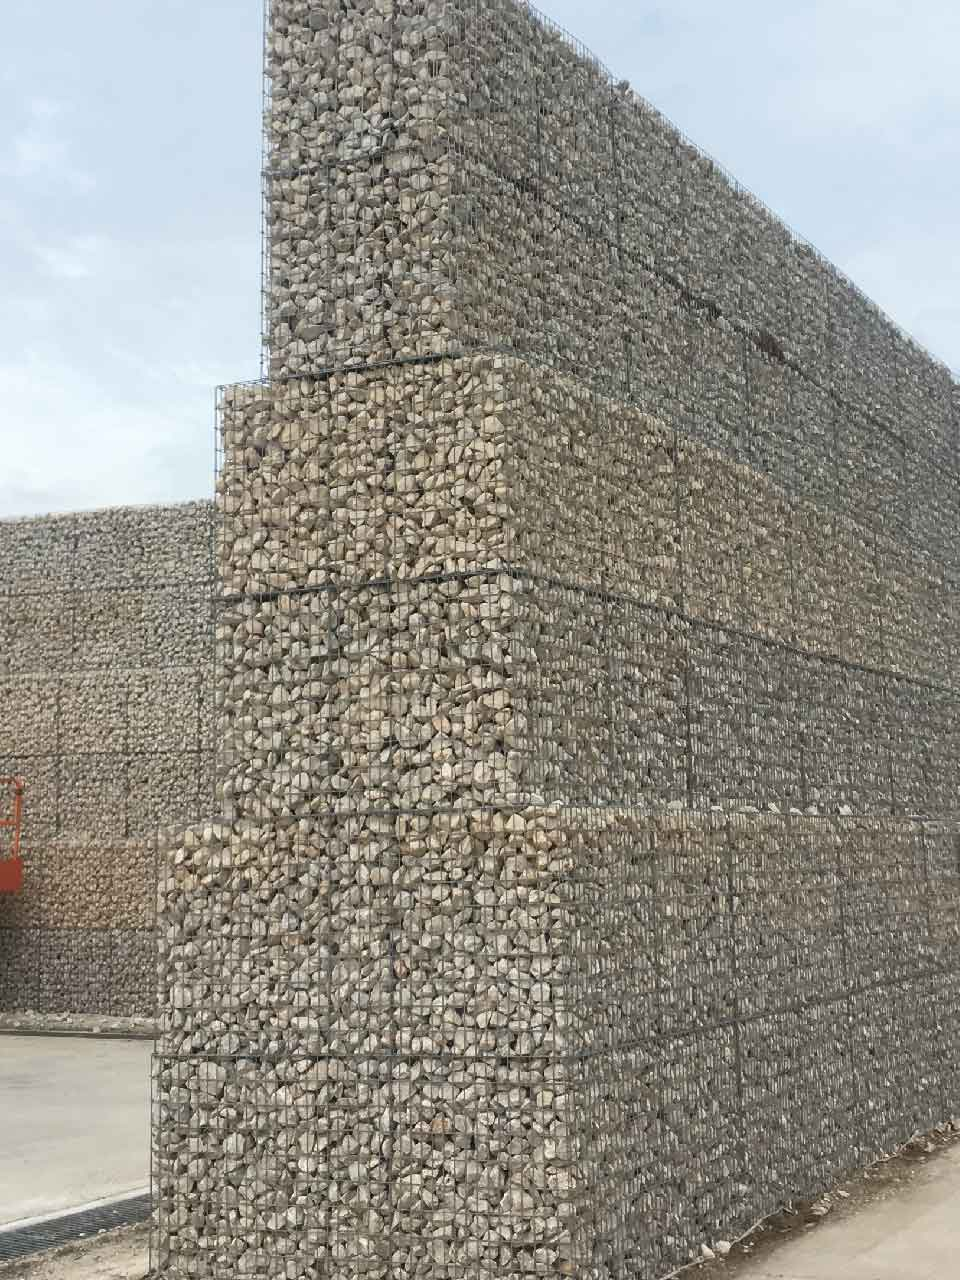 mur anti bruit en gabions et noyau de sable construction d 39 un mur cran anti bruit de 72m en. Black Bedroom Furniture Sets. Home Design Ideas